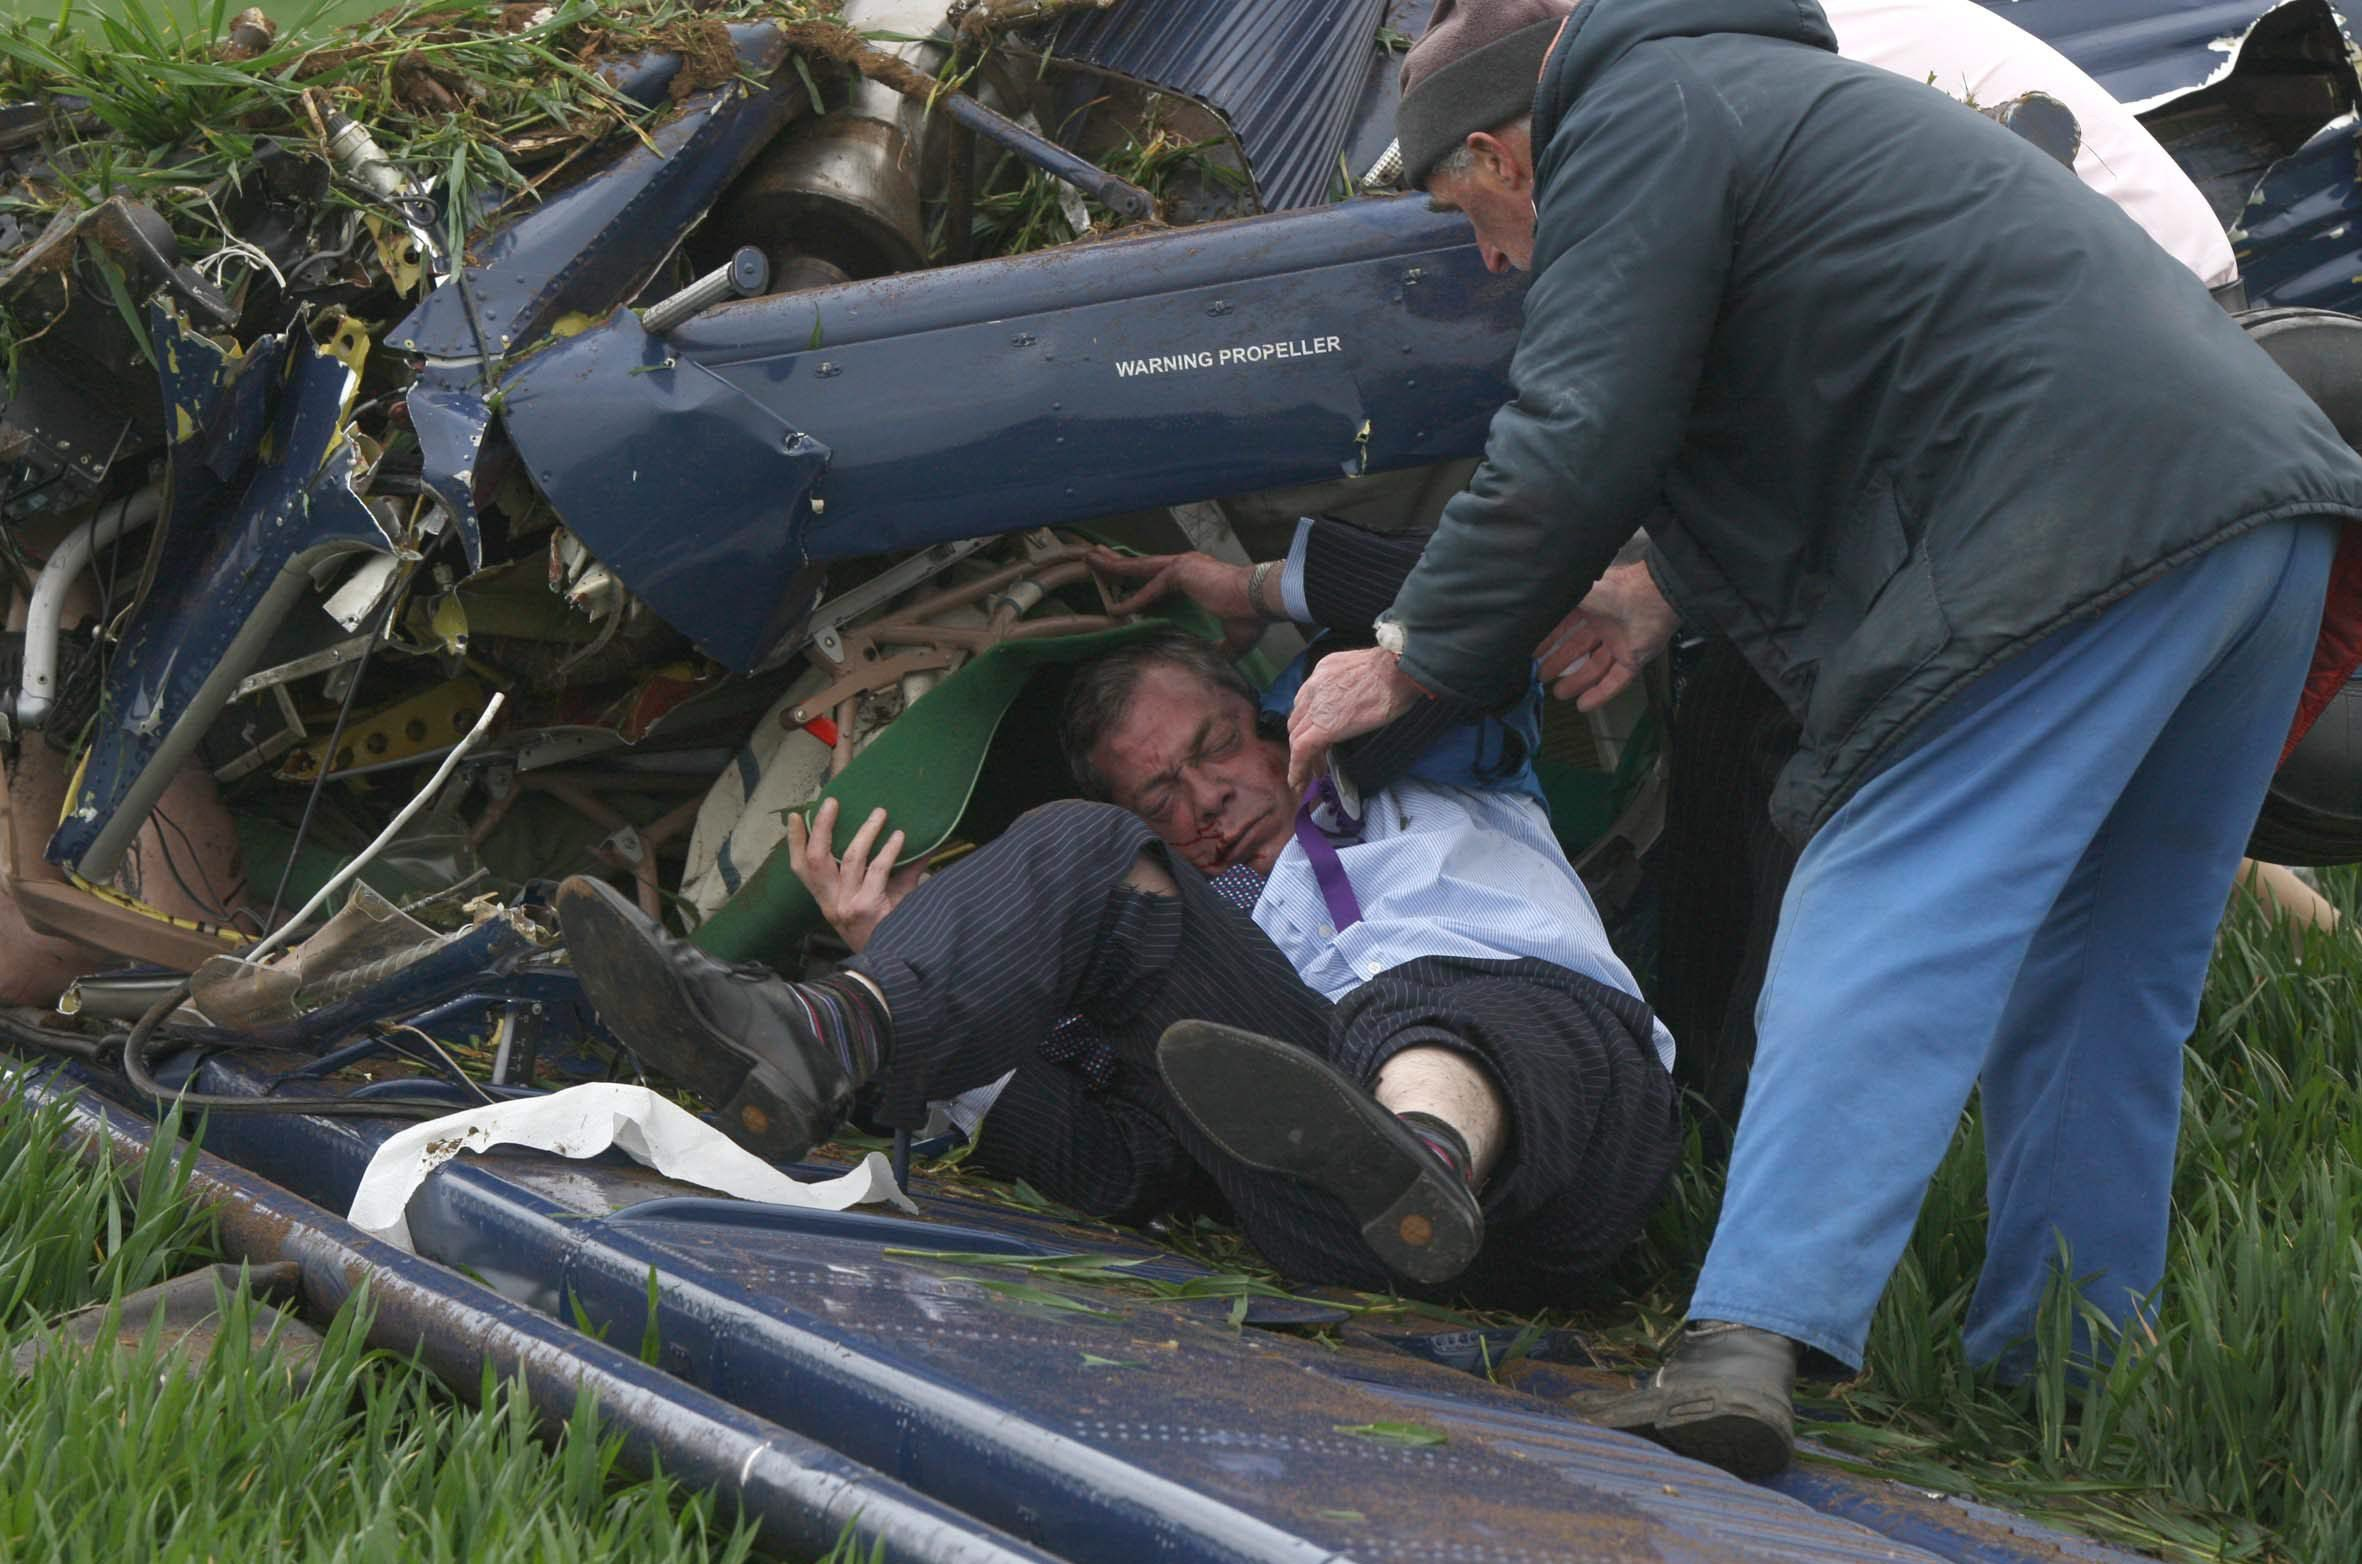 * EXPENSIVE! FEE MUST BE AGREED WITH NEIL HYDE BEFORE USE * UKIP candidate for Buckingham Nigel Farage narrowly escapes death as his plane crashed to the ground at Hinton Airfield, Northamptonshire. Farage was planning on flying a UKIP Banner from the light aircraft when it got caught in the tail causing the crash. Image of Farage being pulled from the wreckage by UKIP PR Man Duncan Barkes and a passerby